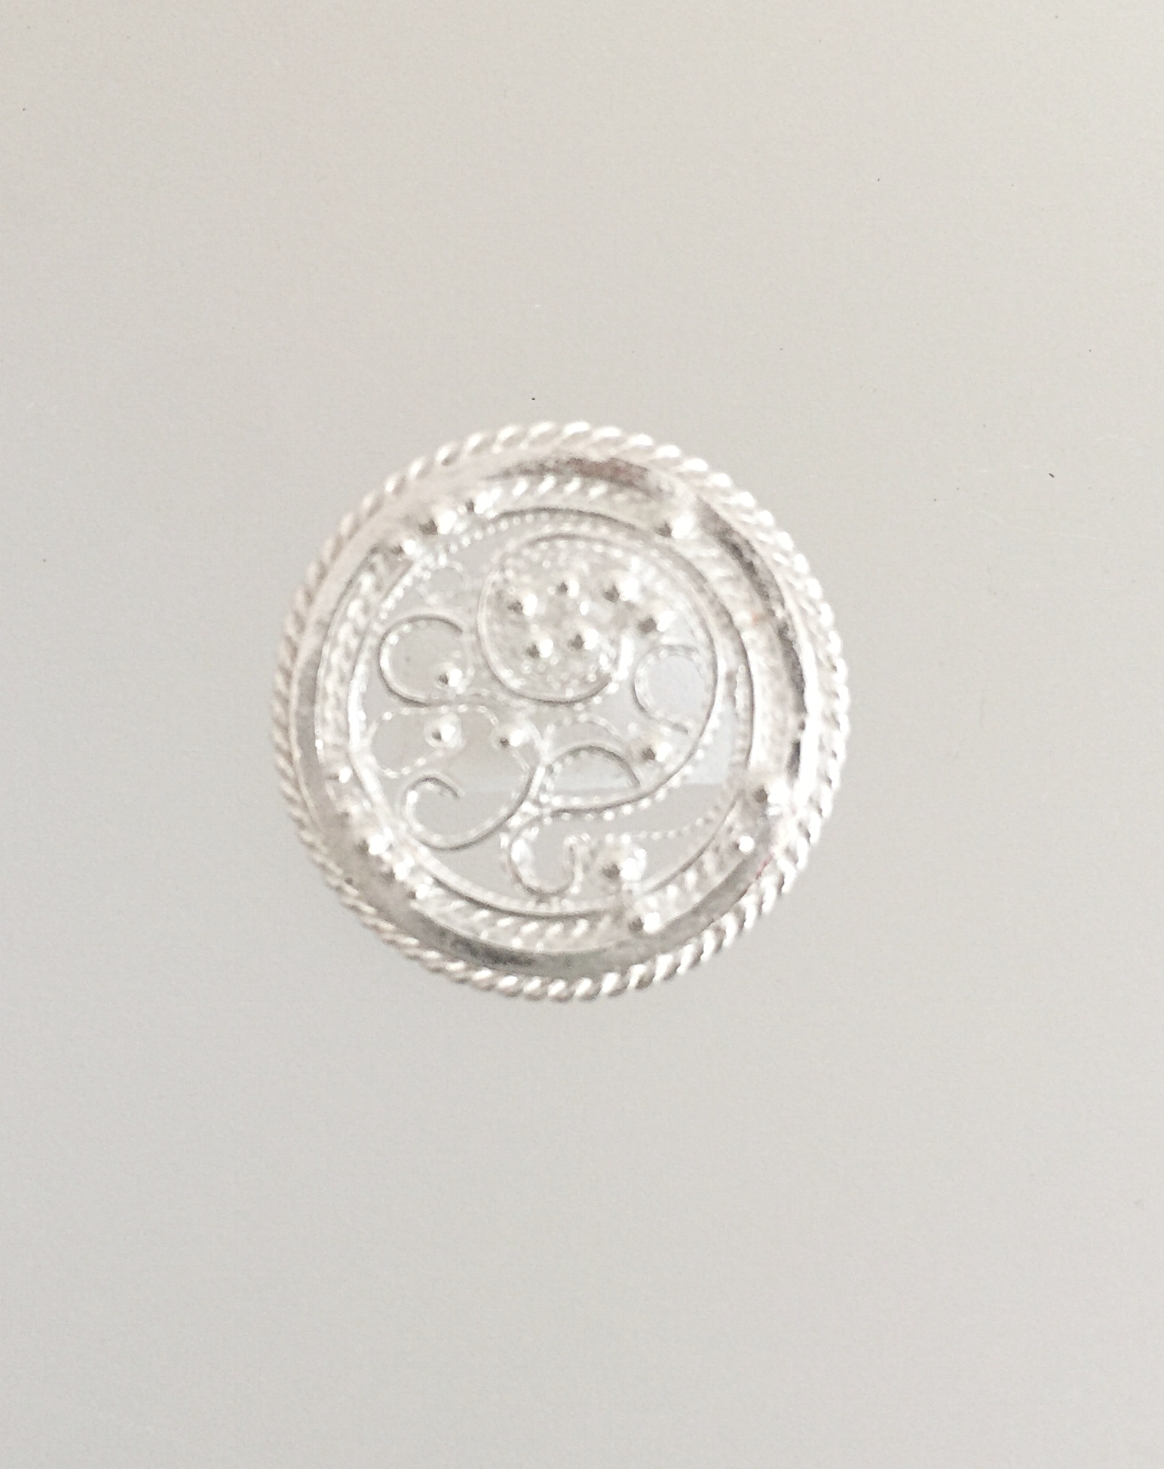 Round Filigree With Twisted Wire Border and Many Small Balls